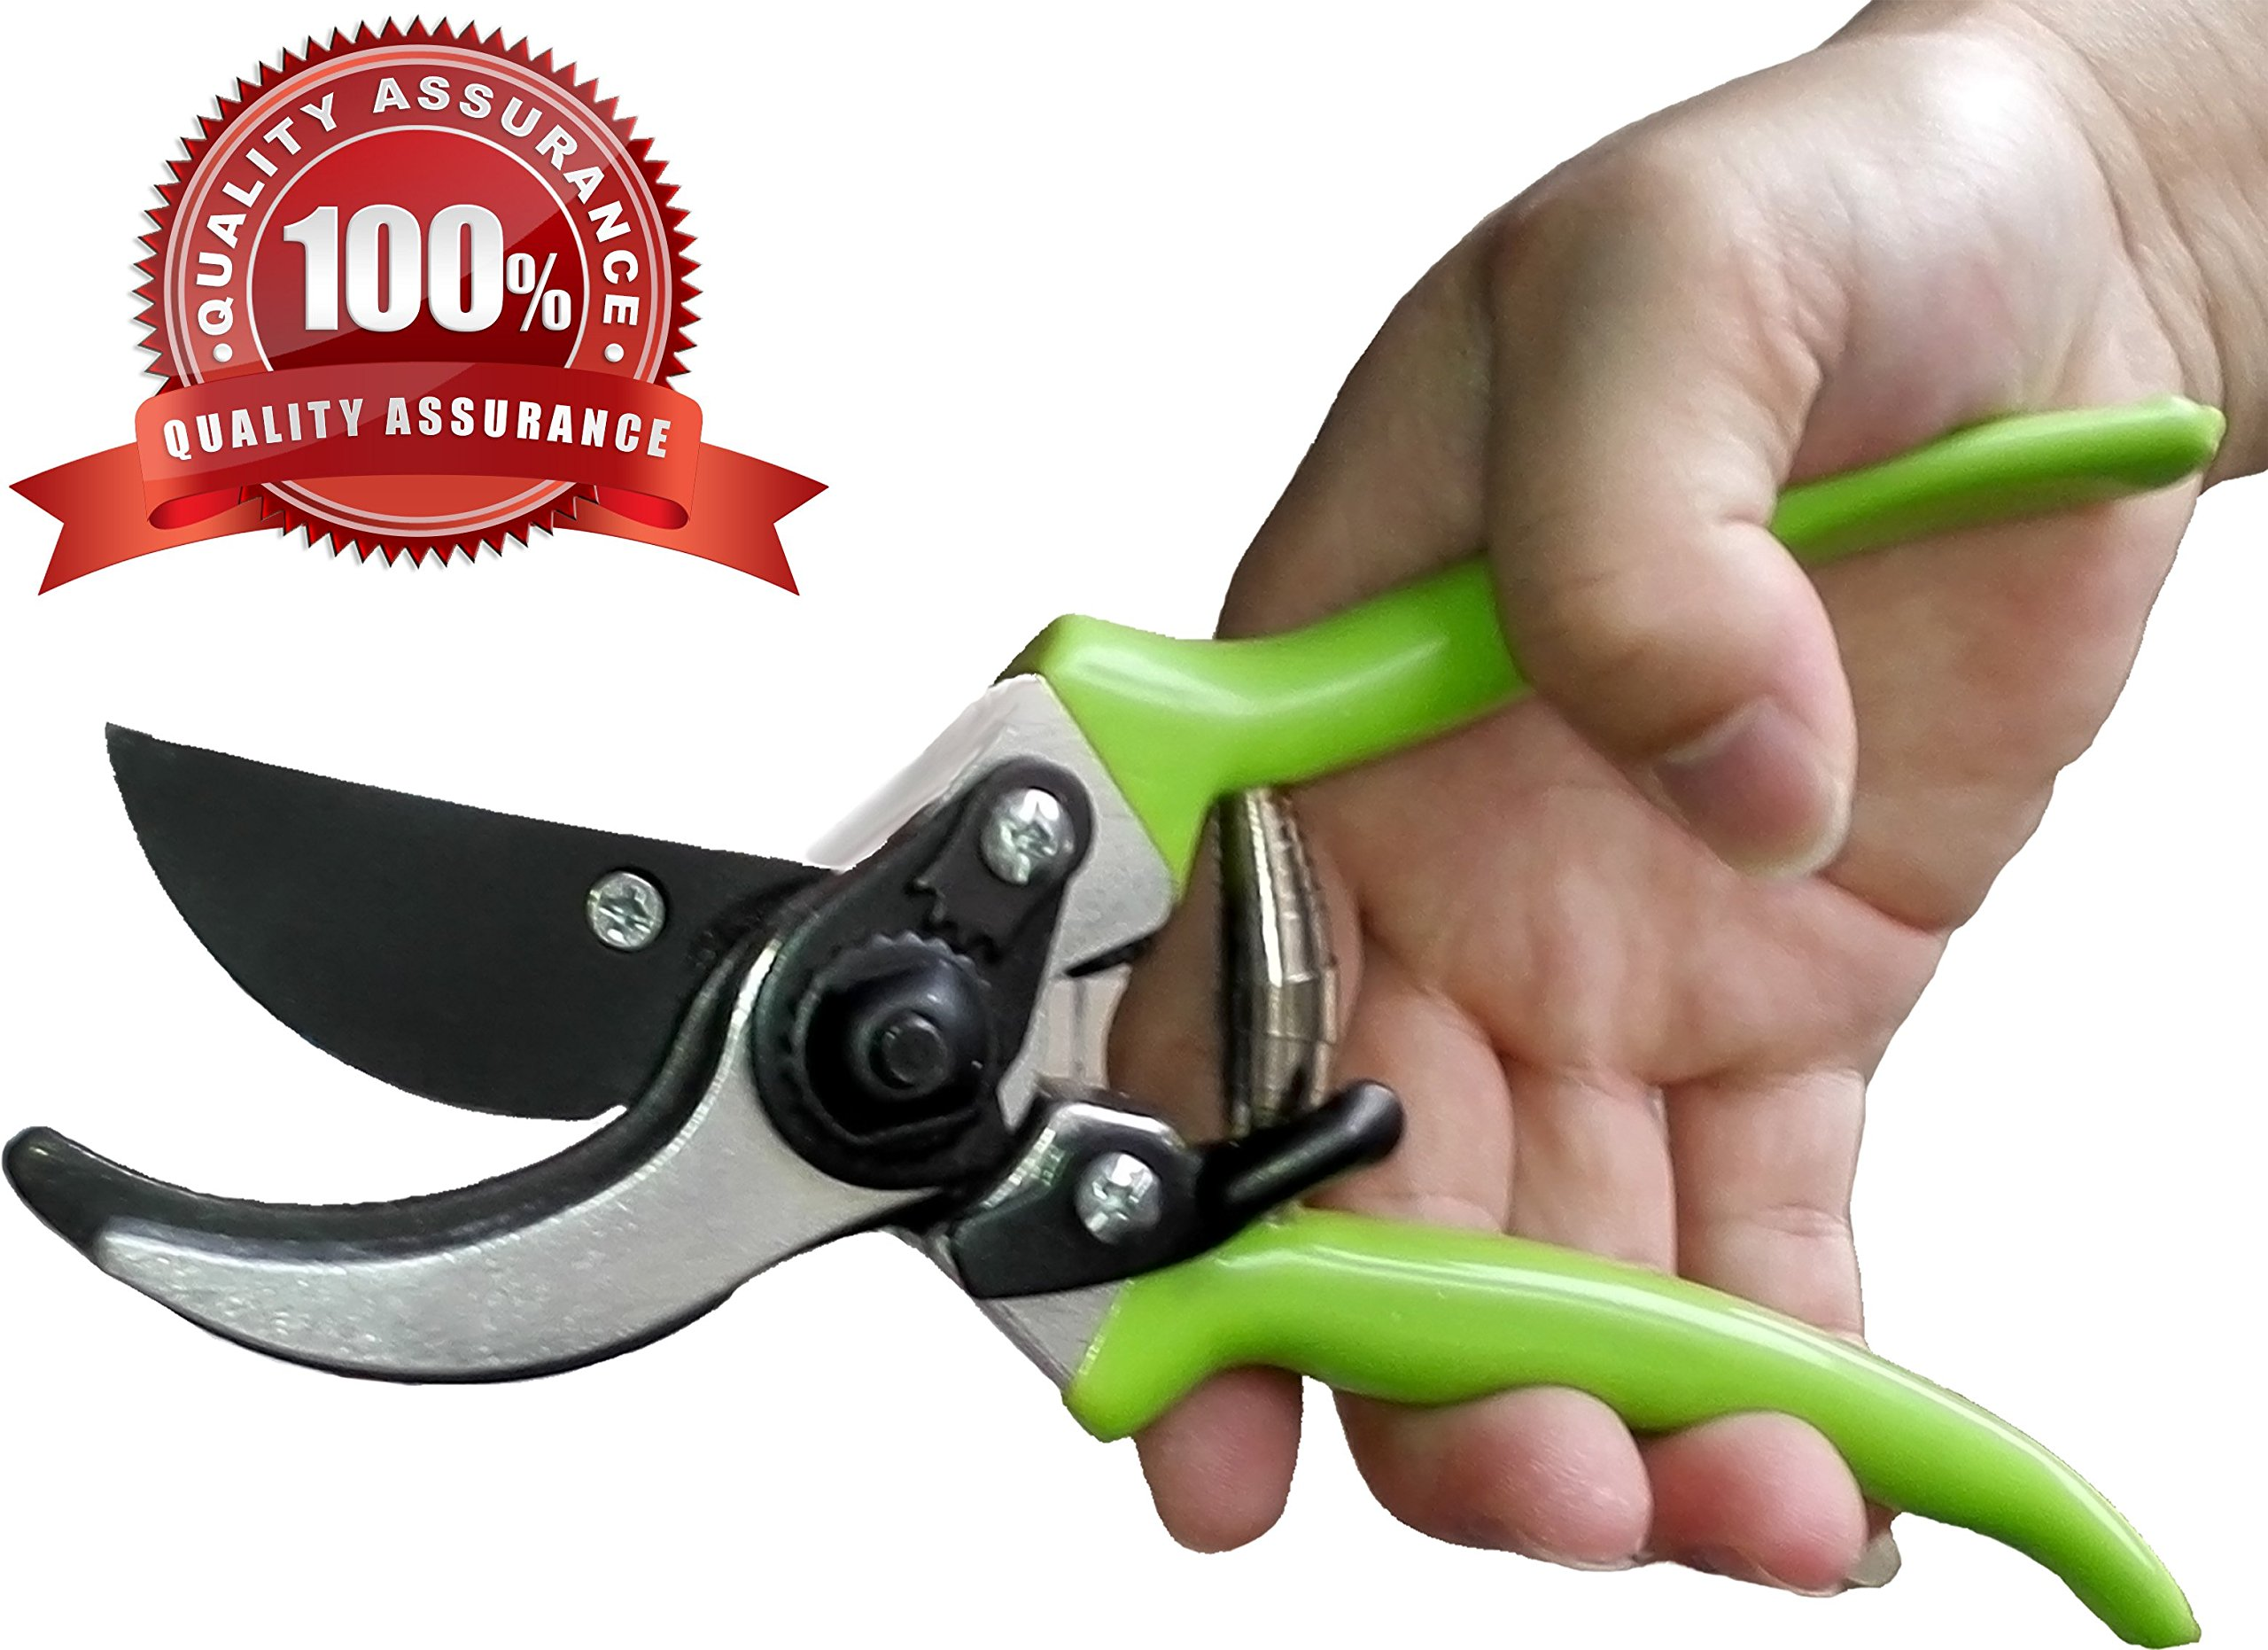 QUIET 100% Premium High Carbon Steel Professional Pruning Shears Clippers Bypass Ergonomic,Branches Bush Bonsai Roses Vines and Weeds